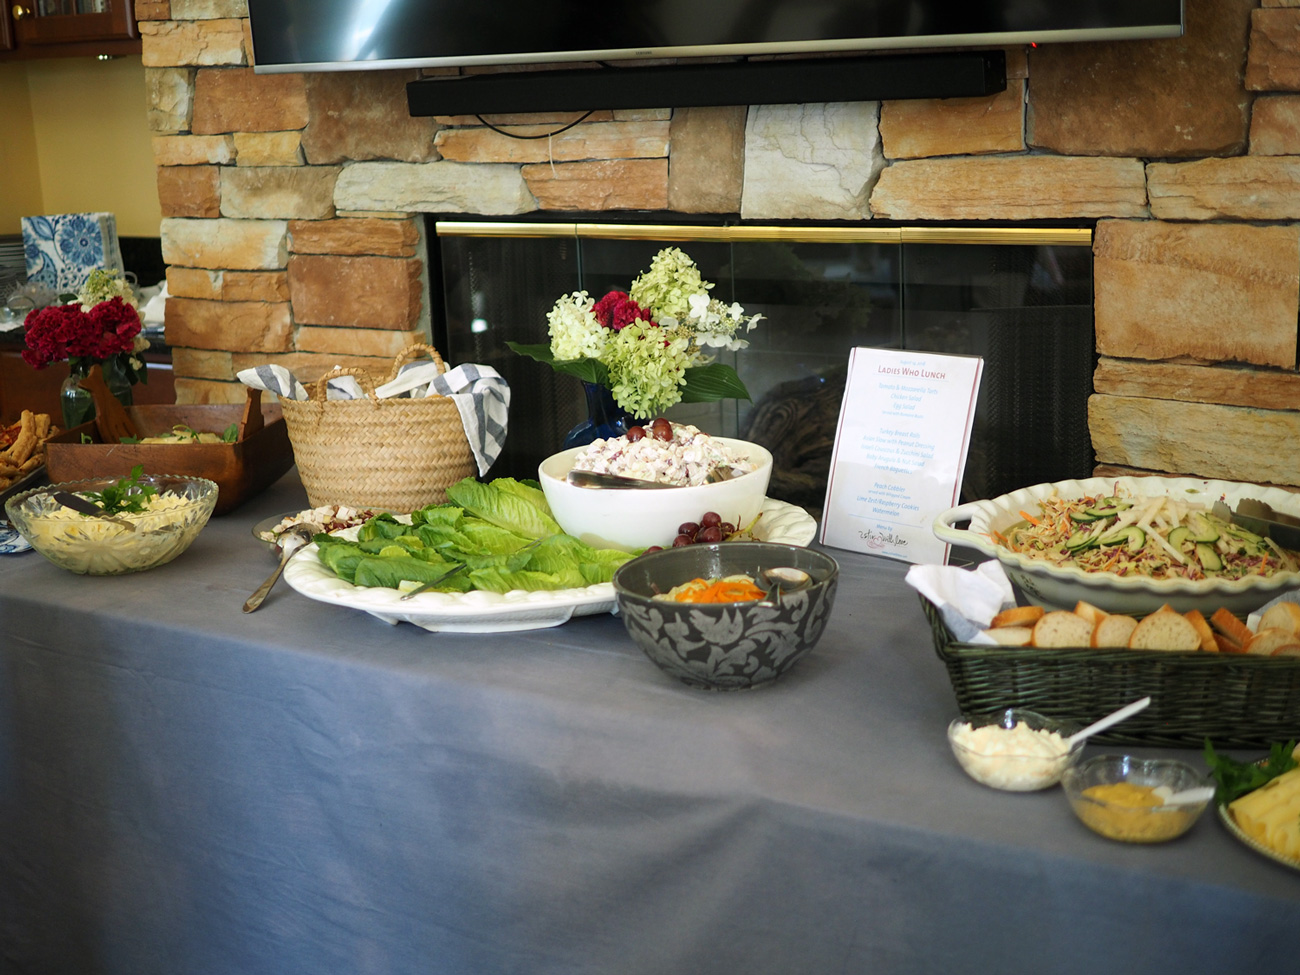 I was happy that they allowed me to move around furniture so we could set up the buffet table for maximum access. I placed a menu on the table with all the offerings. You can also place cards in front of each dish as a way to identify the food.